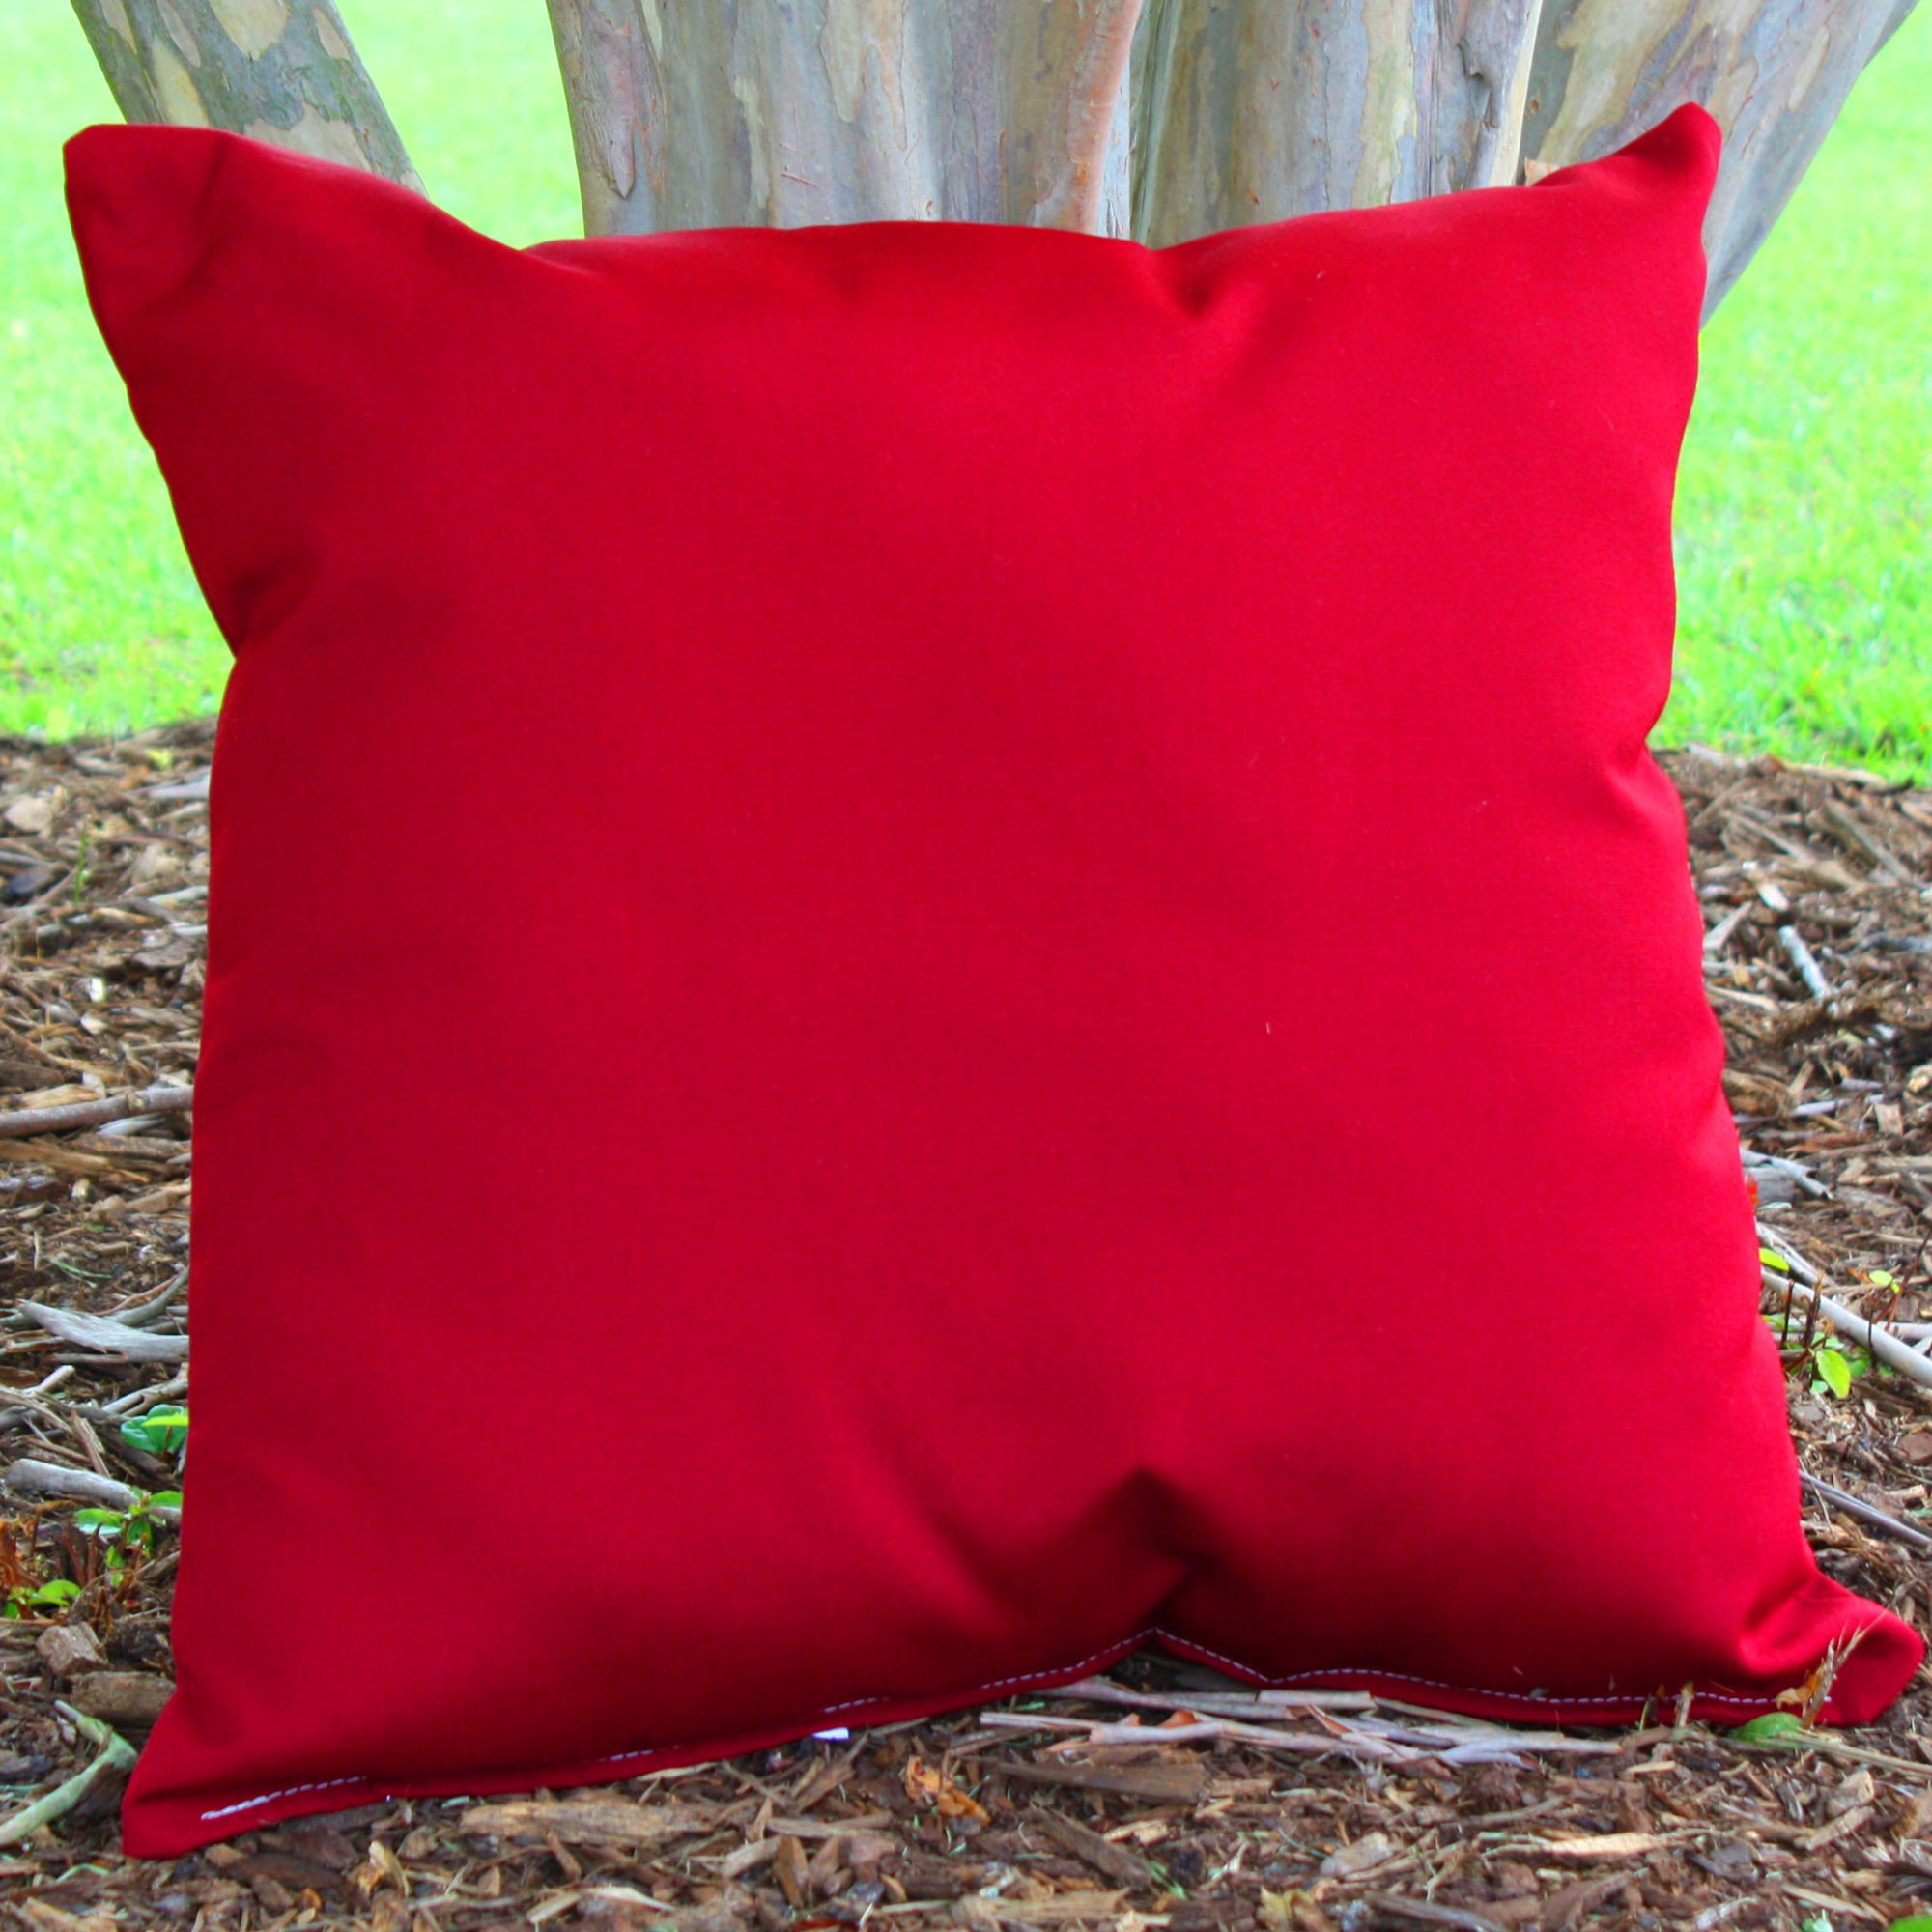 Shop Red Sunbrella Outdoor Throw Pillow 16 in x 16 in